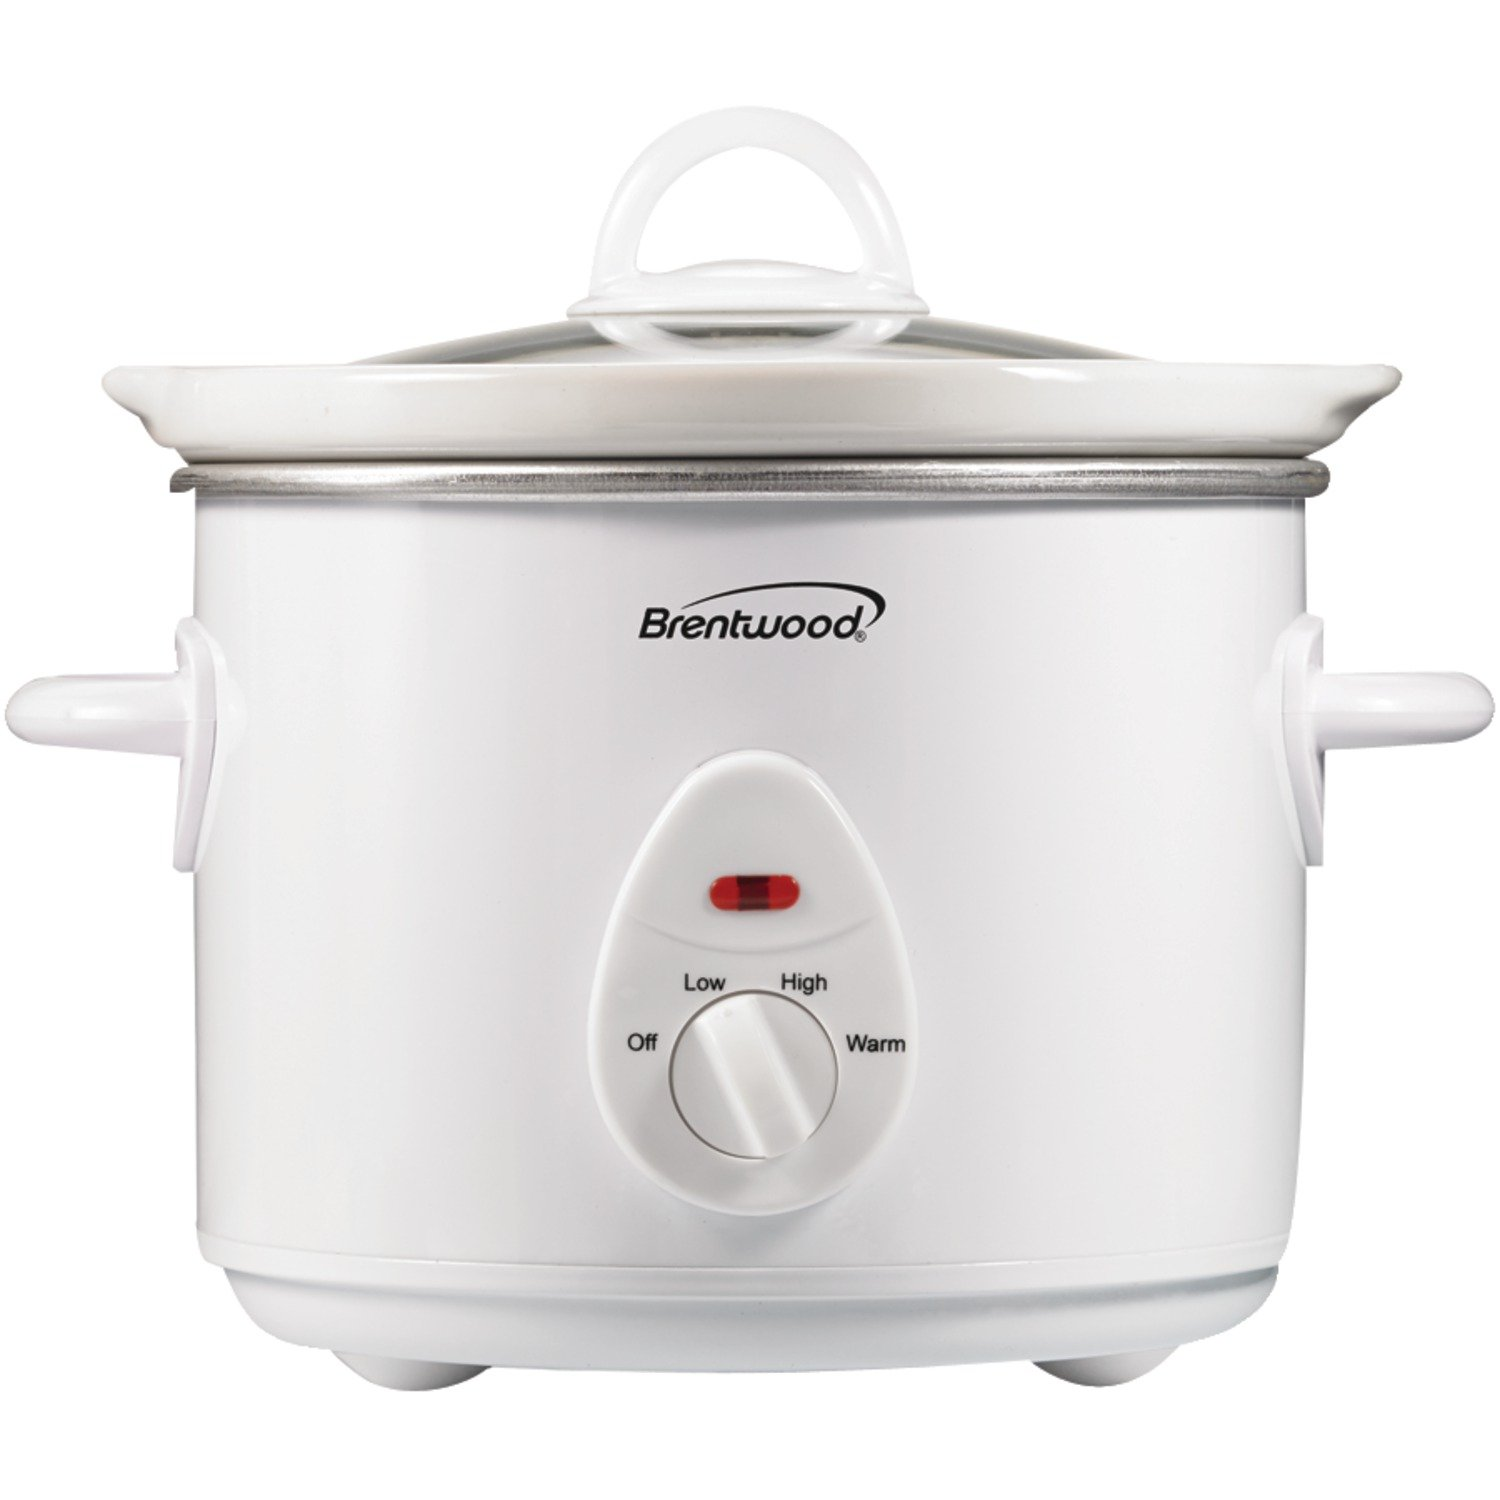 Brentwood Appliances SC-135W 3-Quart Slow Cooker White